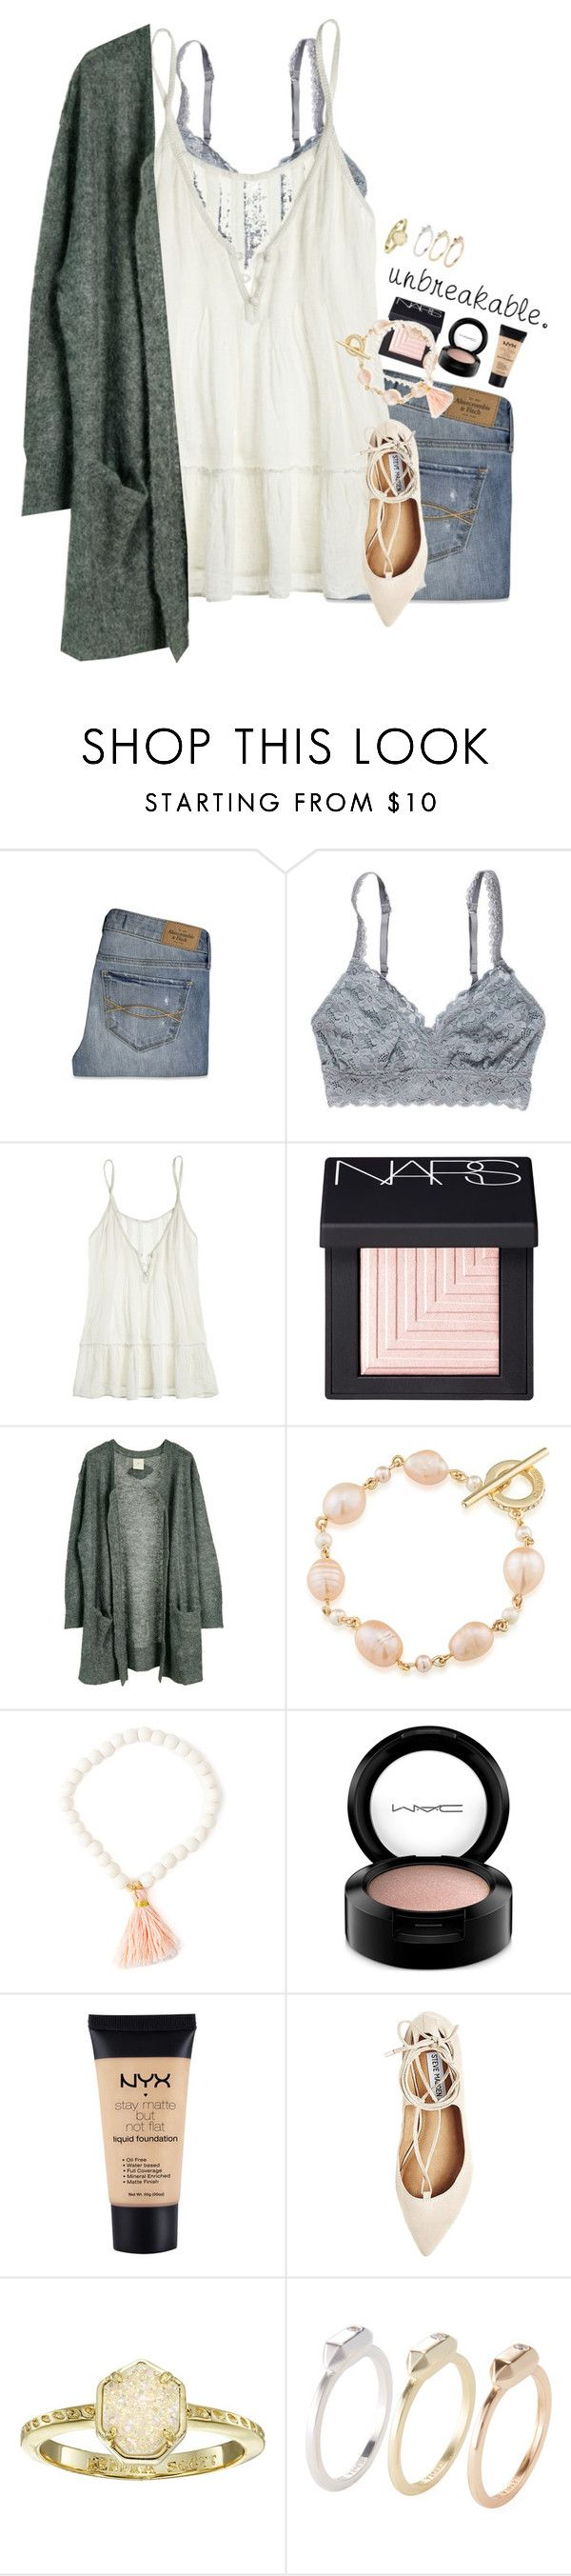 """""""unbreakable."""" by sdyerrtx ❤ liked on Polyvore featuring Abercrombie & Fitch, American Eagle Outfitters, Calypso St. Barth, NARS Cosmetics, Julie Fagerholt Heartmade, Carolee, MAC Cosmetics, NYX, Steve Madden and Kendra Scott"""